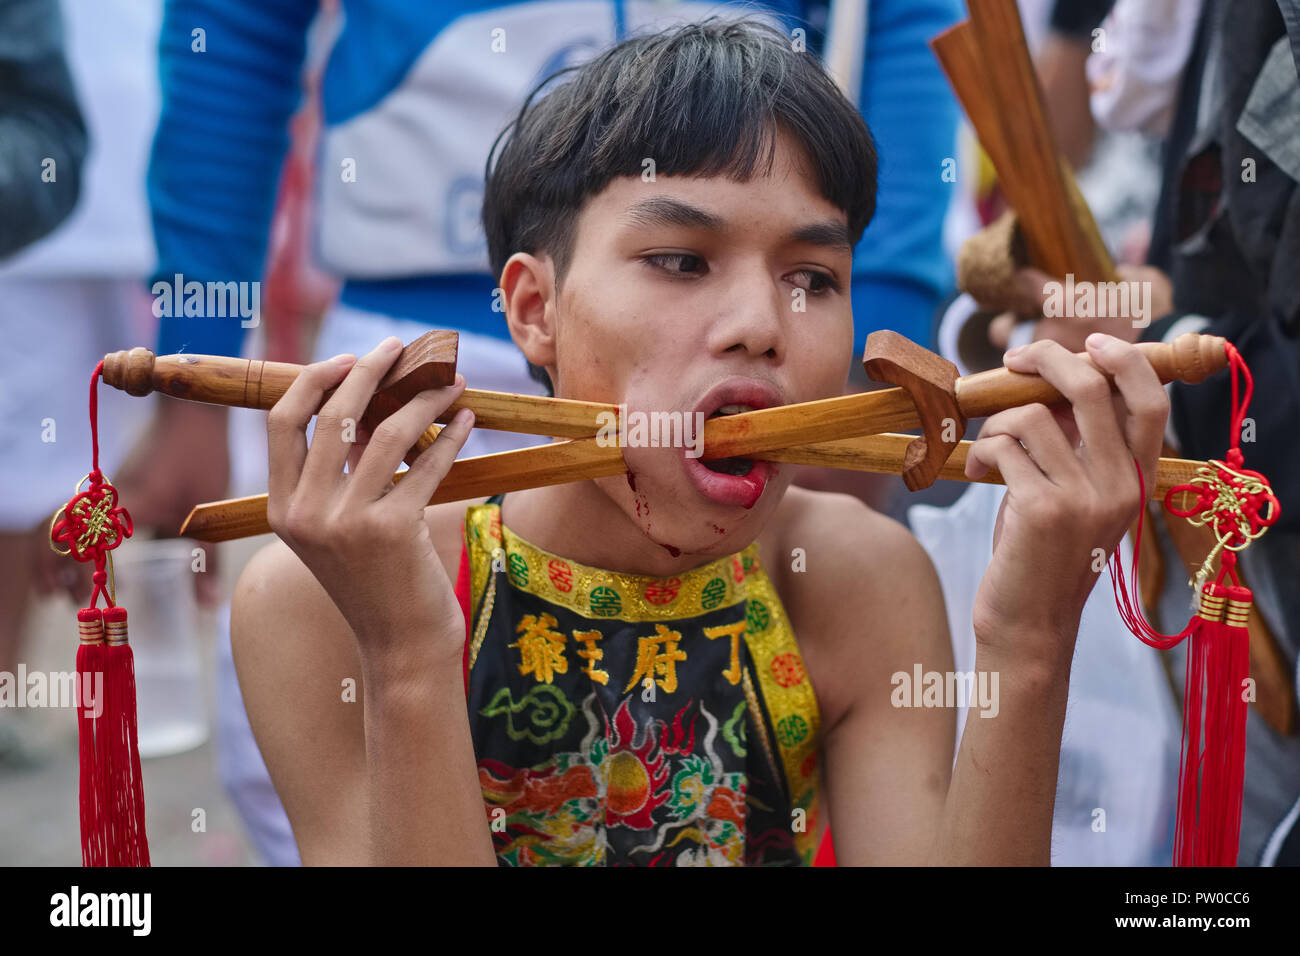 Young participant in the annual, 9 day long Vegetarian Festival in Phuket, Thailand, with cheeks sliced open to insert wooden swords - Stock Image